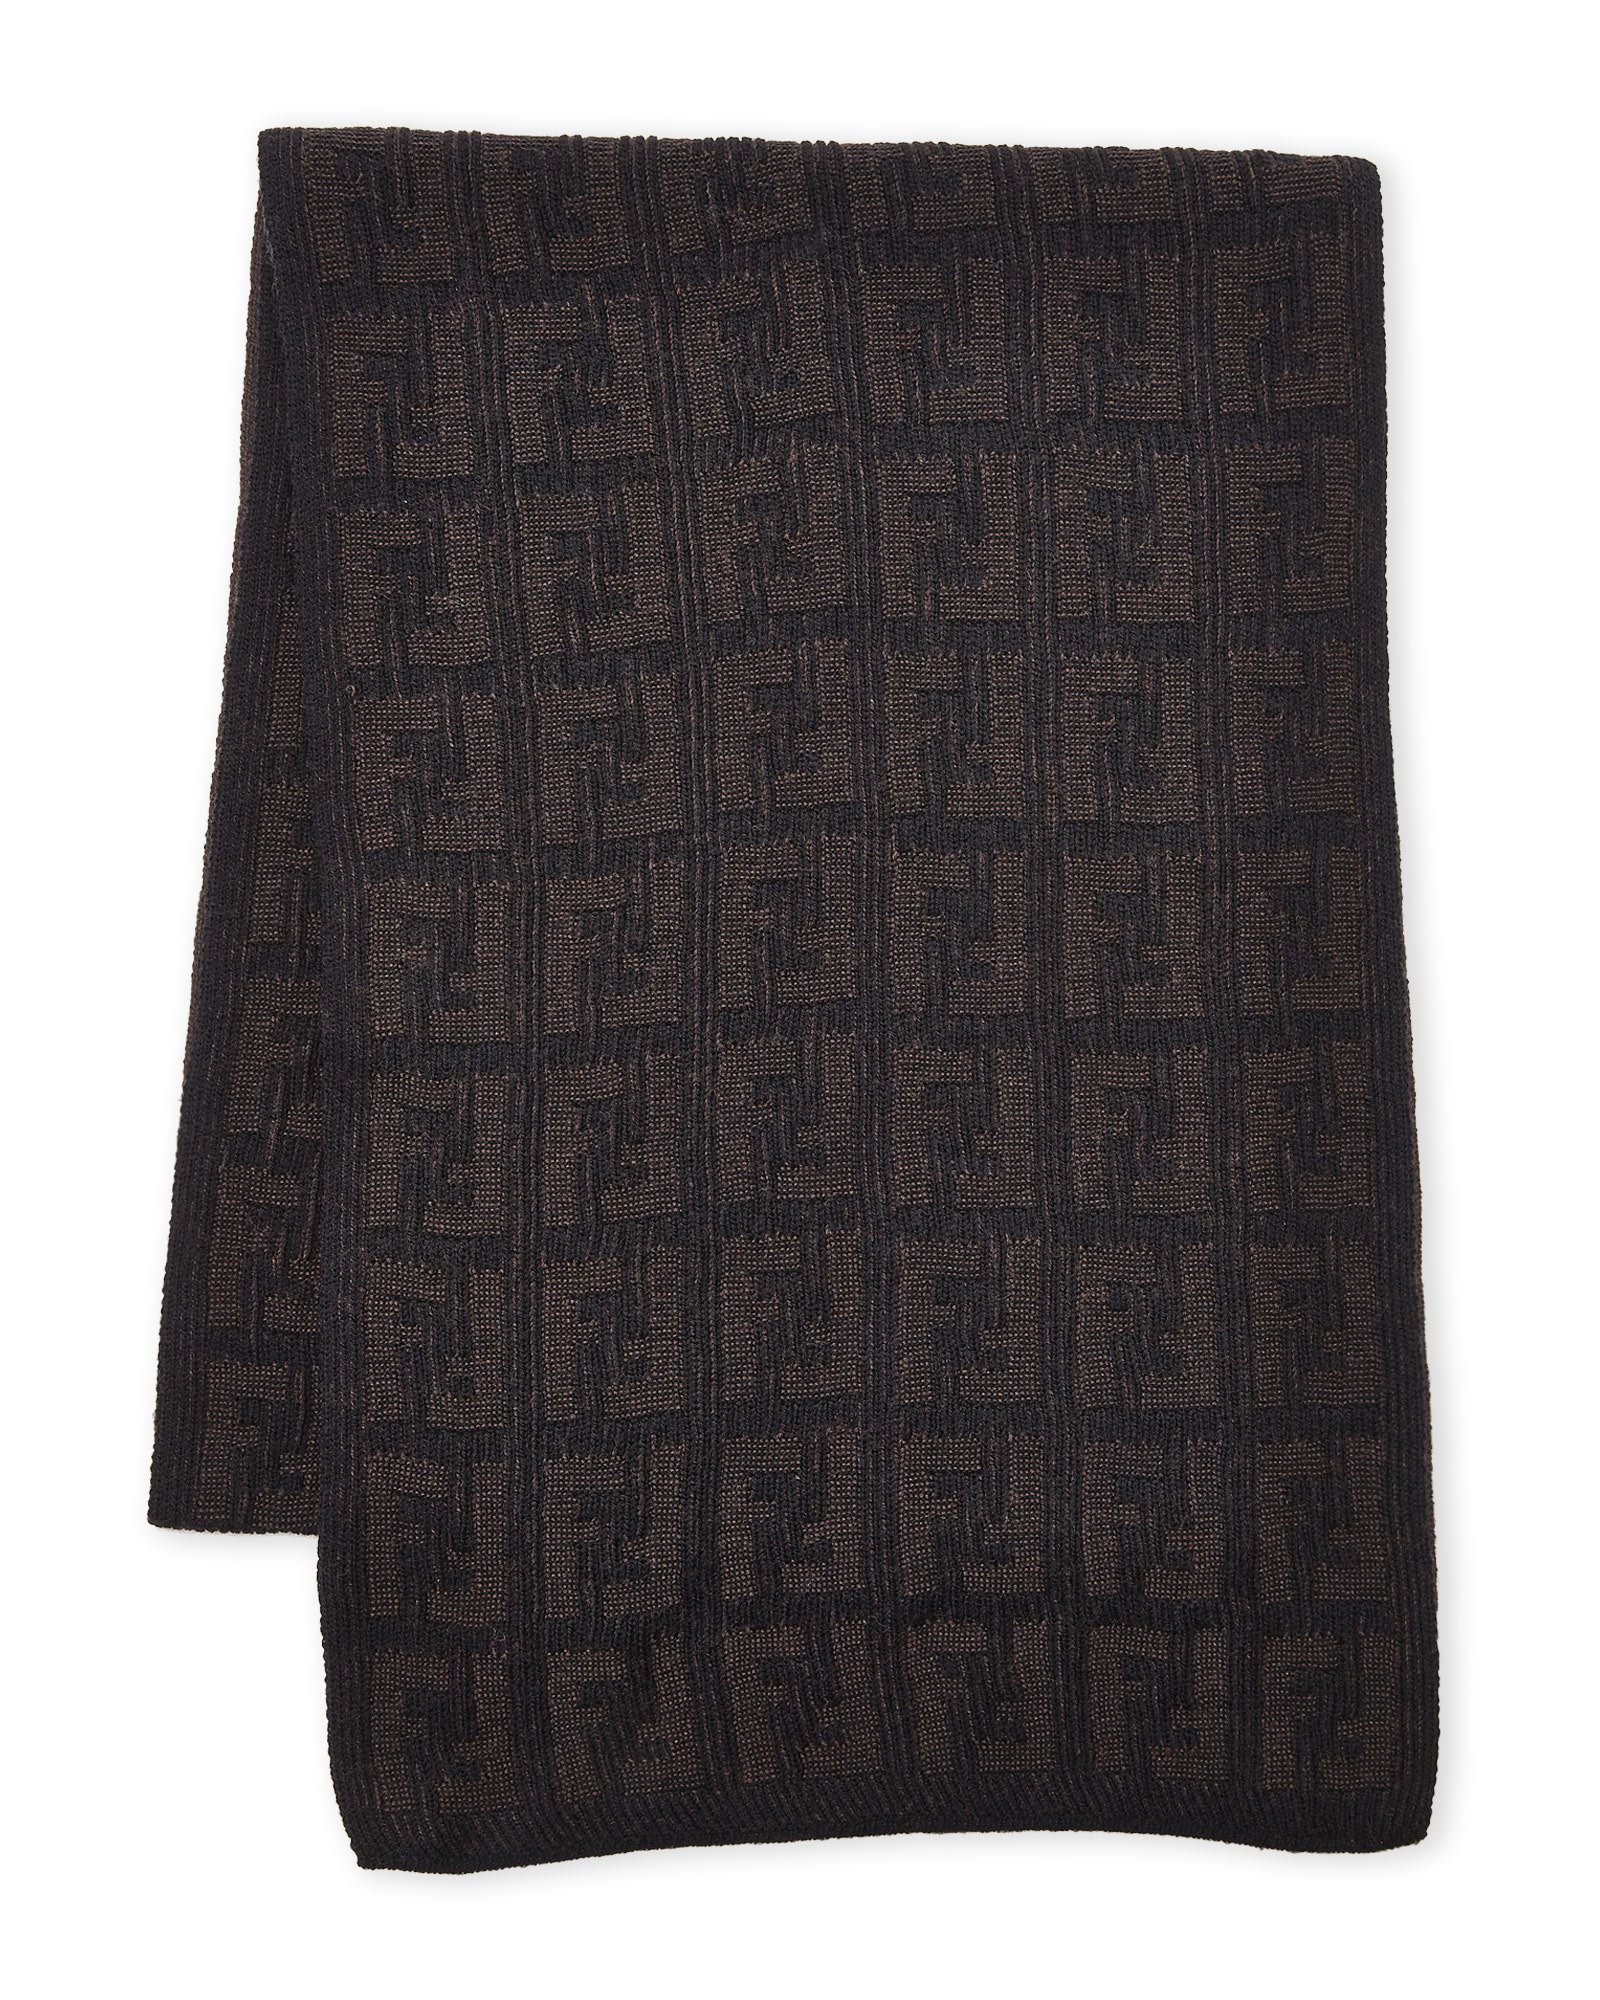 Fendi Women's Men's Knit Tonal Zucca Monogram Wool Scarf, Brown by Fendi